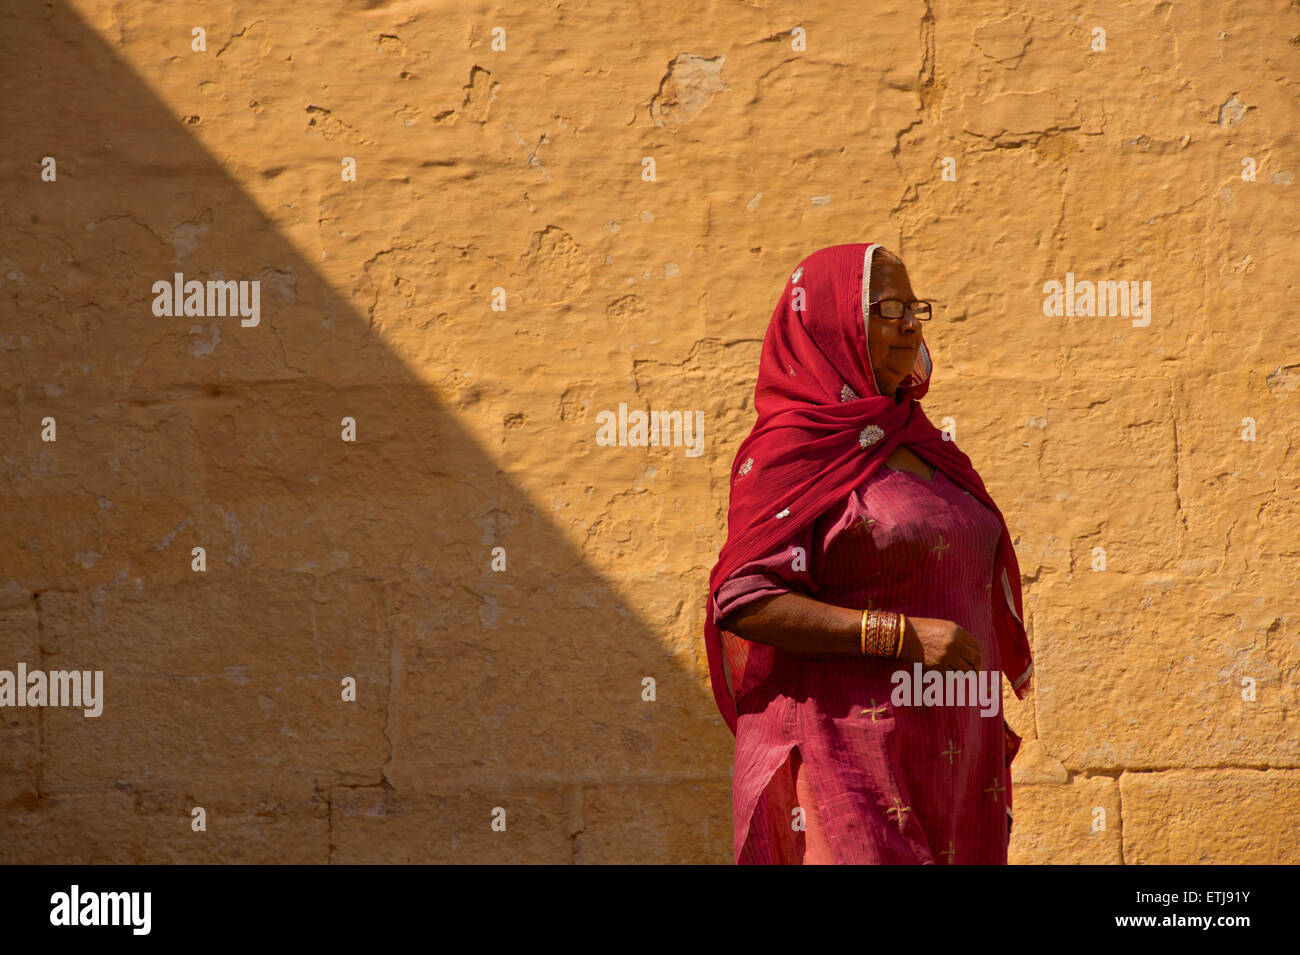 Indian woman in brightly coloured sari, Jodhpur, Rajasthan, India - Stock Image